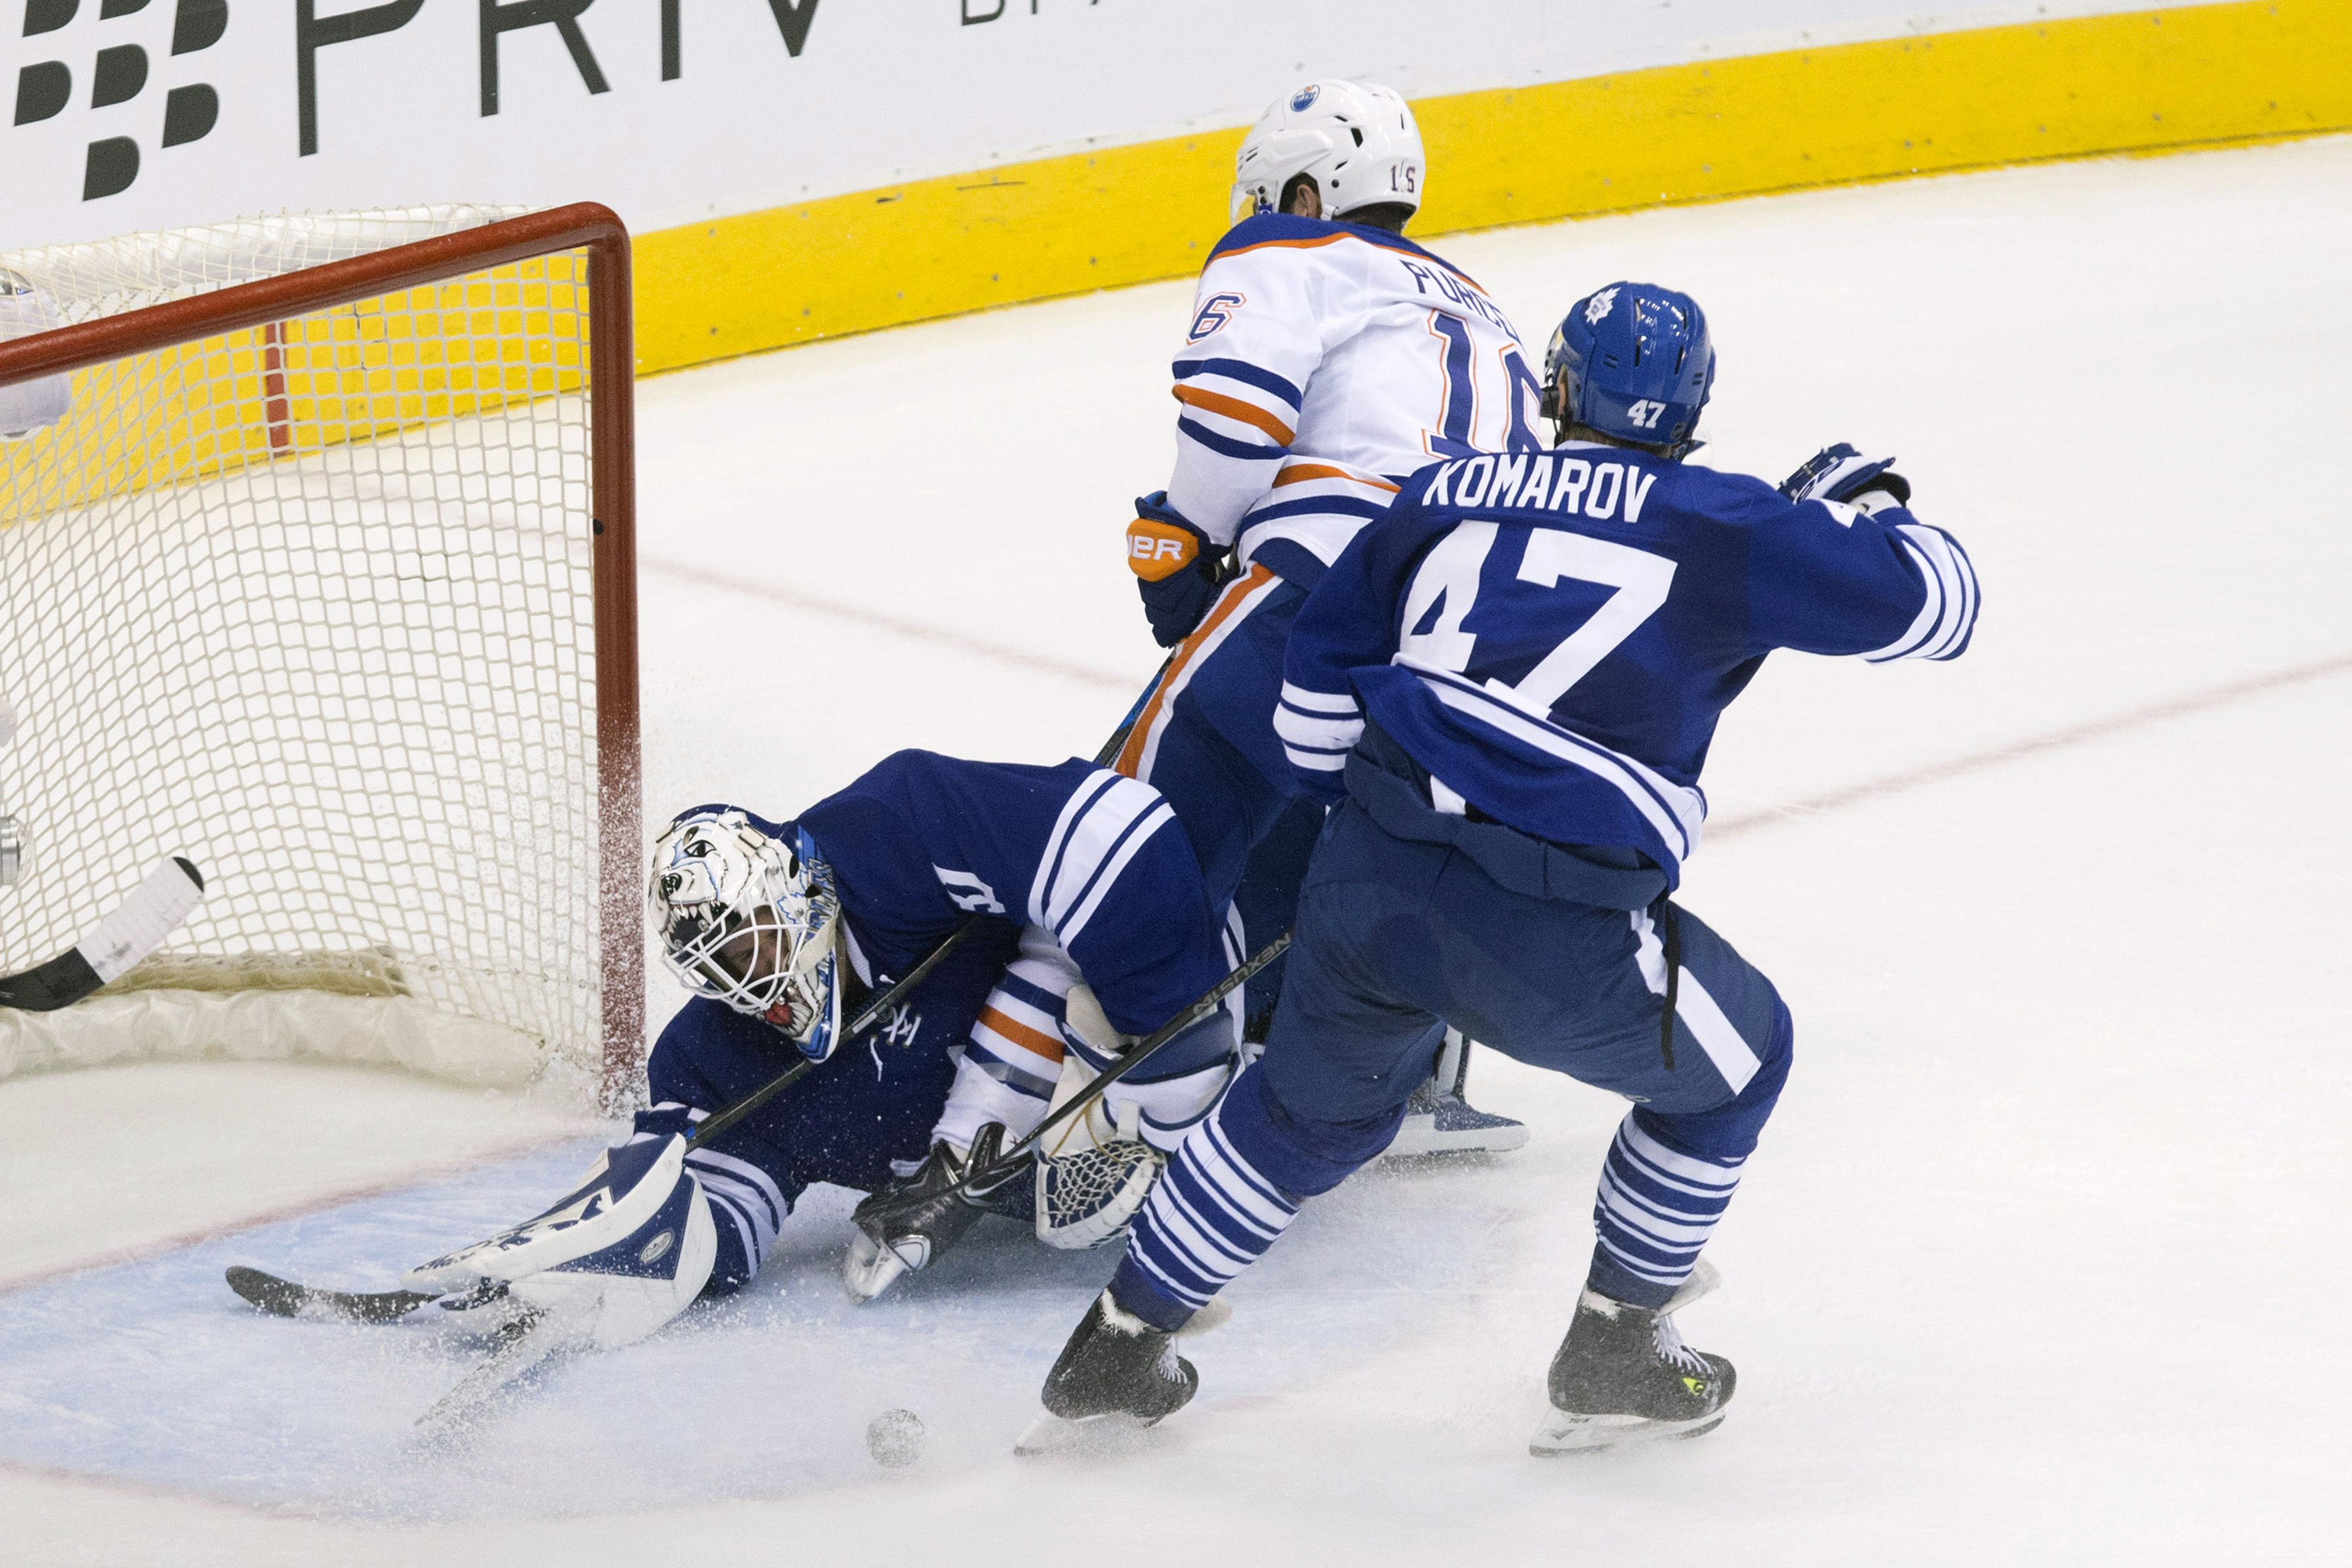 Toronto Maple Leafs goaltender Garret Sparks reaches to clear the puck after making a save from Edmonton Oilers' Teddy Purcell, center, as Maple Leafs' Leo Komarov defends during the second period of an NHL hockey game in Toronto on Monday, Nov. 30, 2015.